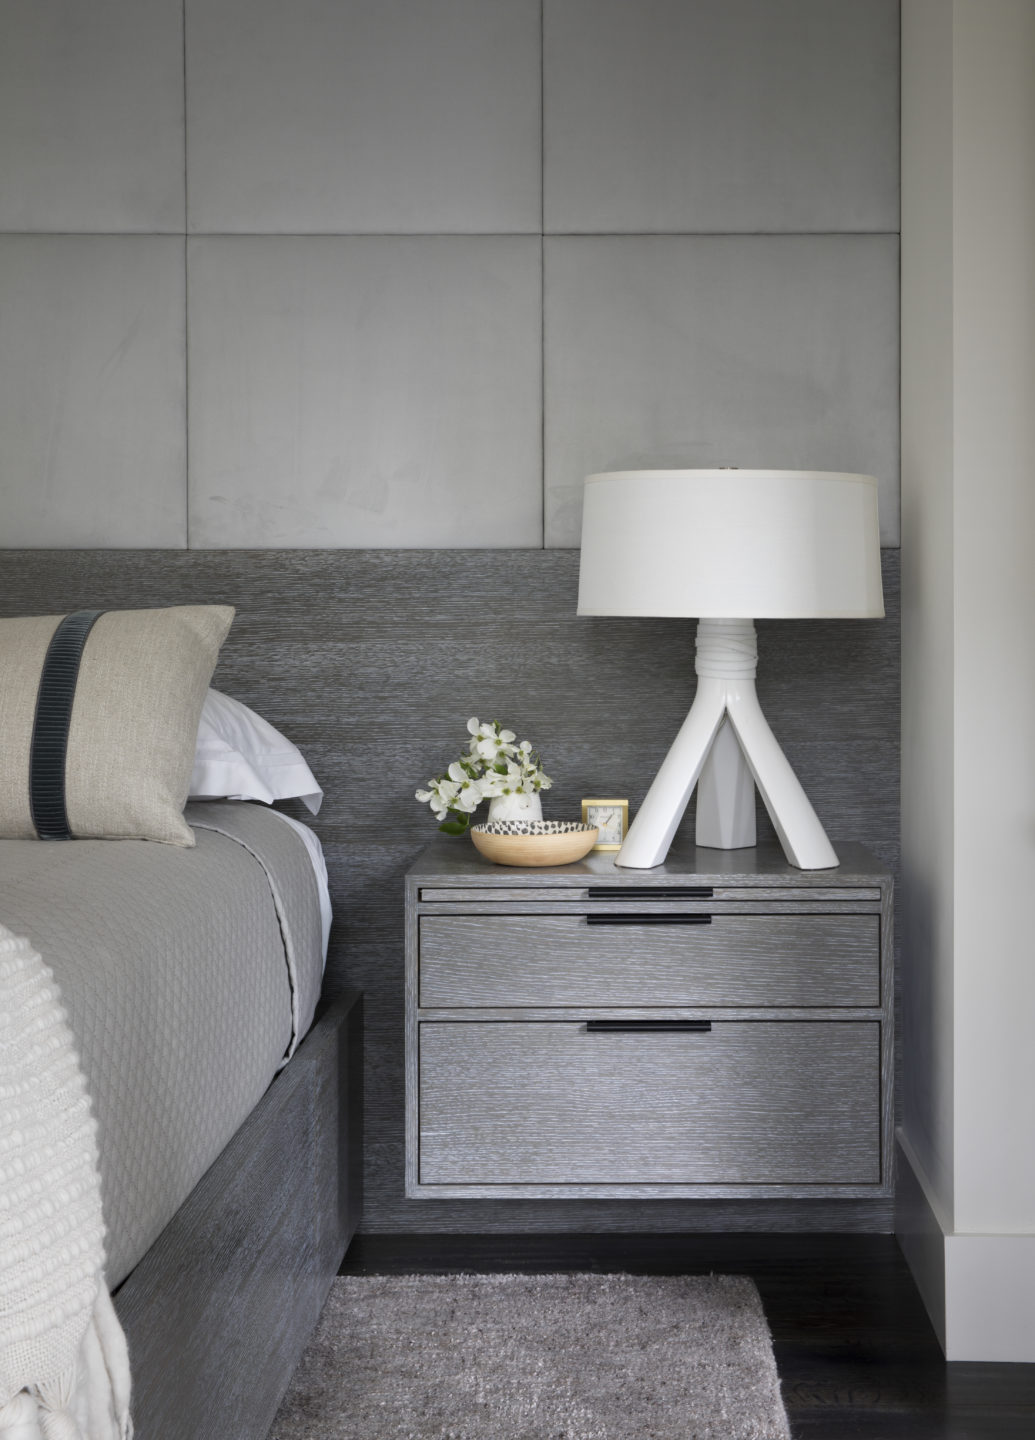 Jennifer_robins_interiors_projects_downtown_sonoma_7_bedroom_BR_details_nightstand